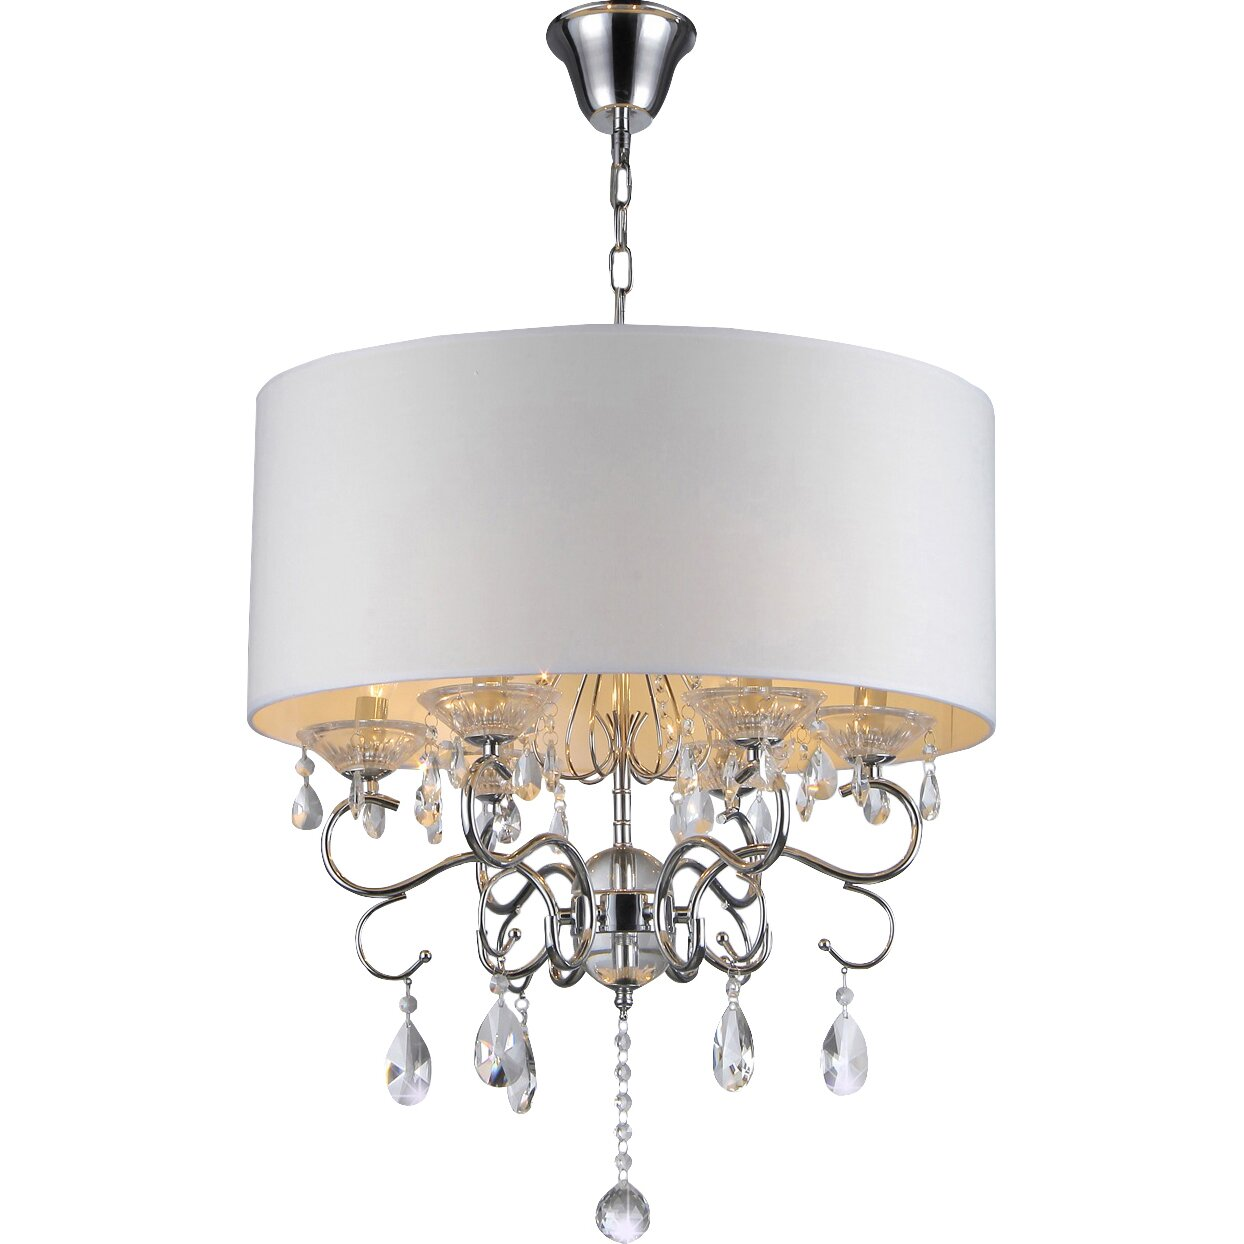 Warehouse Of Tiffany 6 Light Drum Chandelier & Reviews